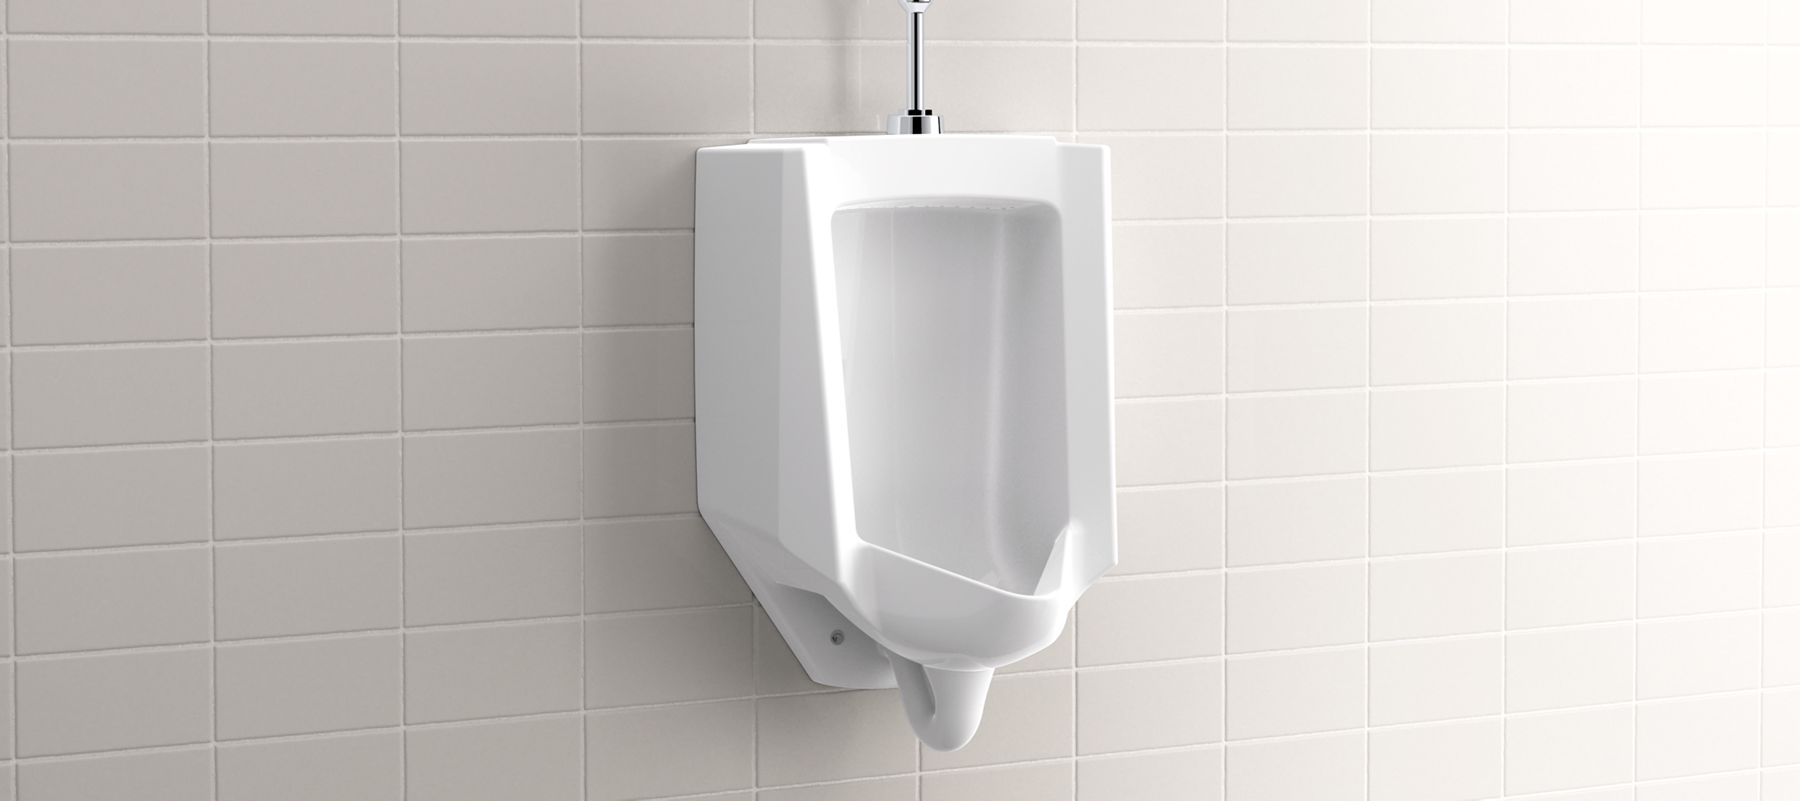 Standard Urinals Urinals Commercial Bathroom Bathroom Kohler